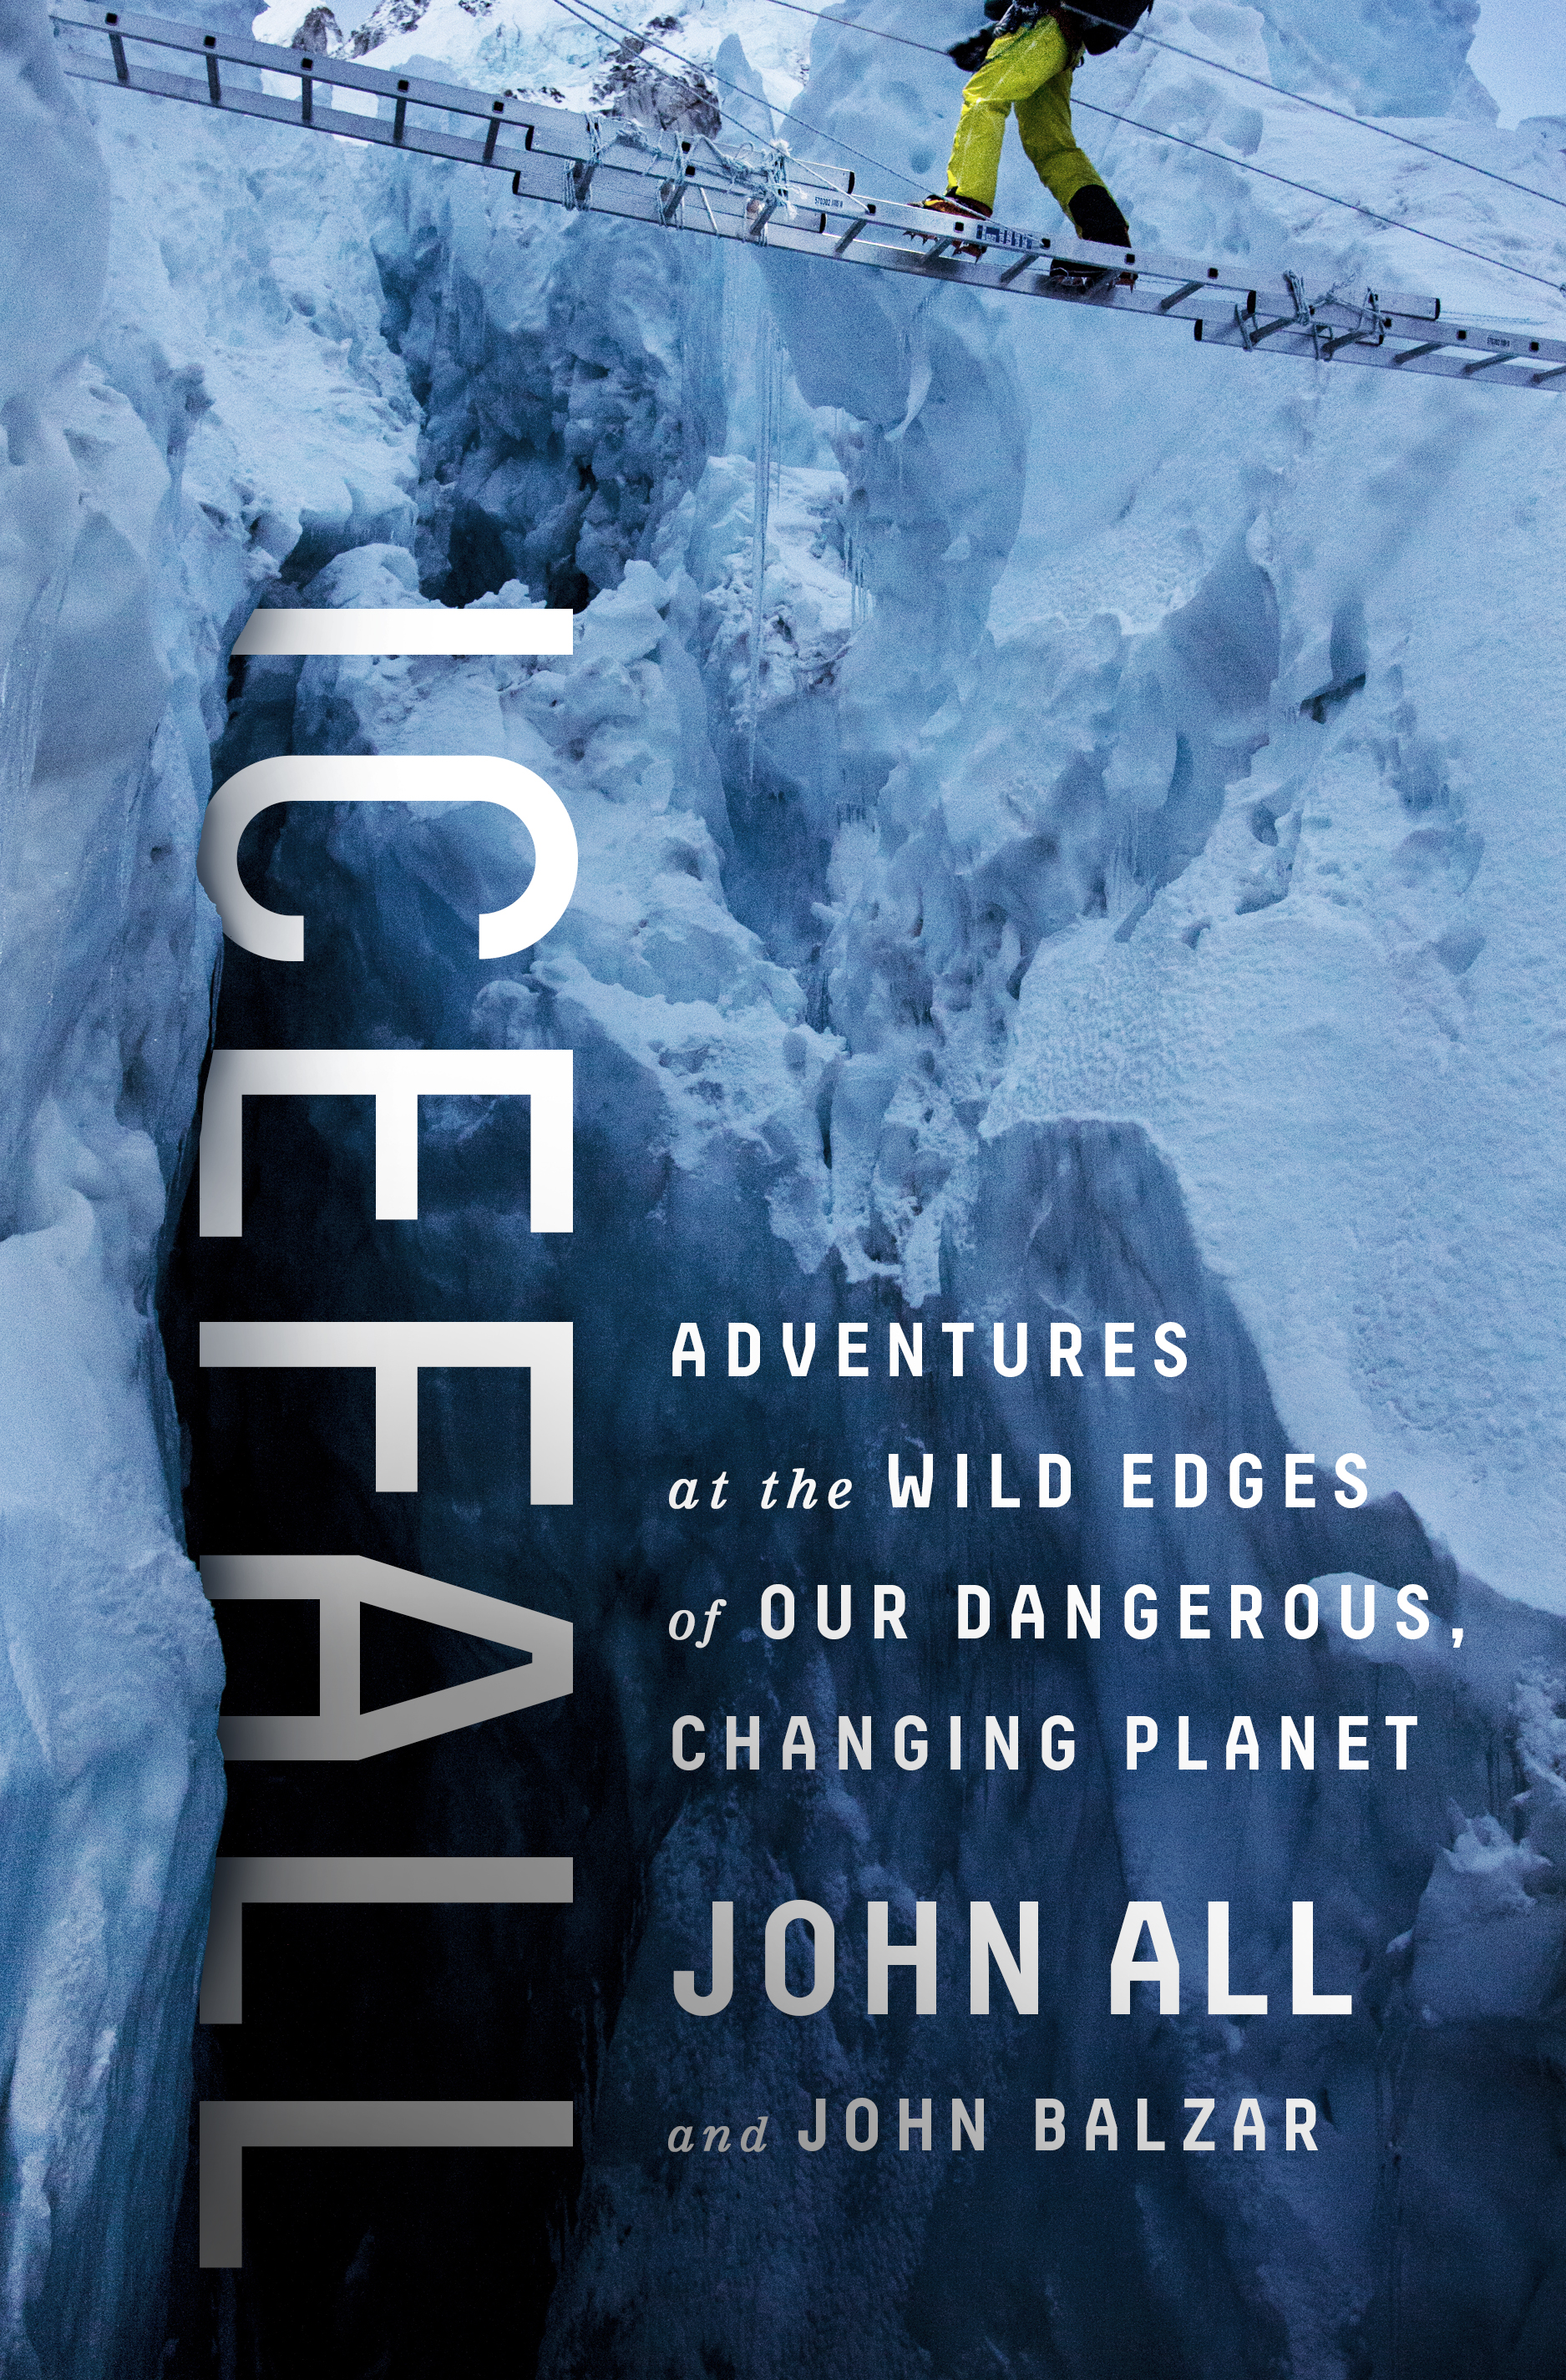 My book is now available! - My crevasse fall, climbing Mt. Everest step by step, adventures in Africa and Central America... While exploring climate change impacts around the world, I've seen a lot of amazing things and they are all in my book ICEFALL ... Buy it on Amazon! (Link).